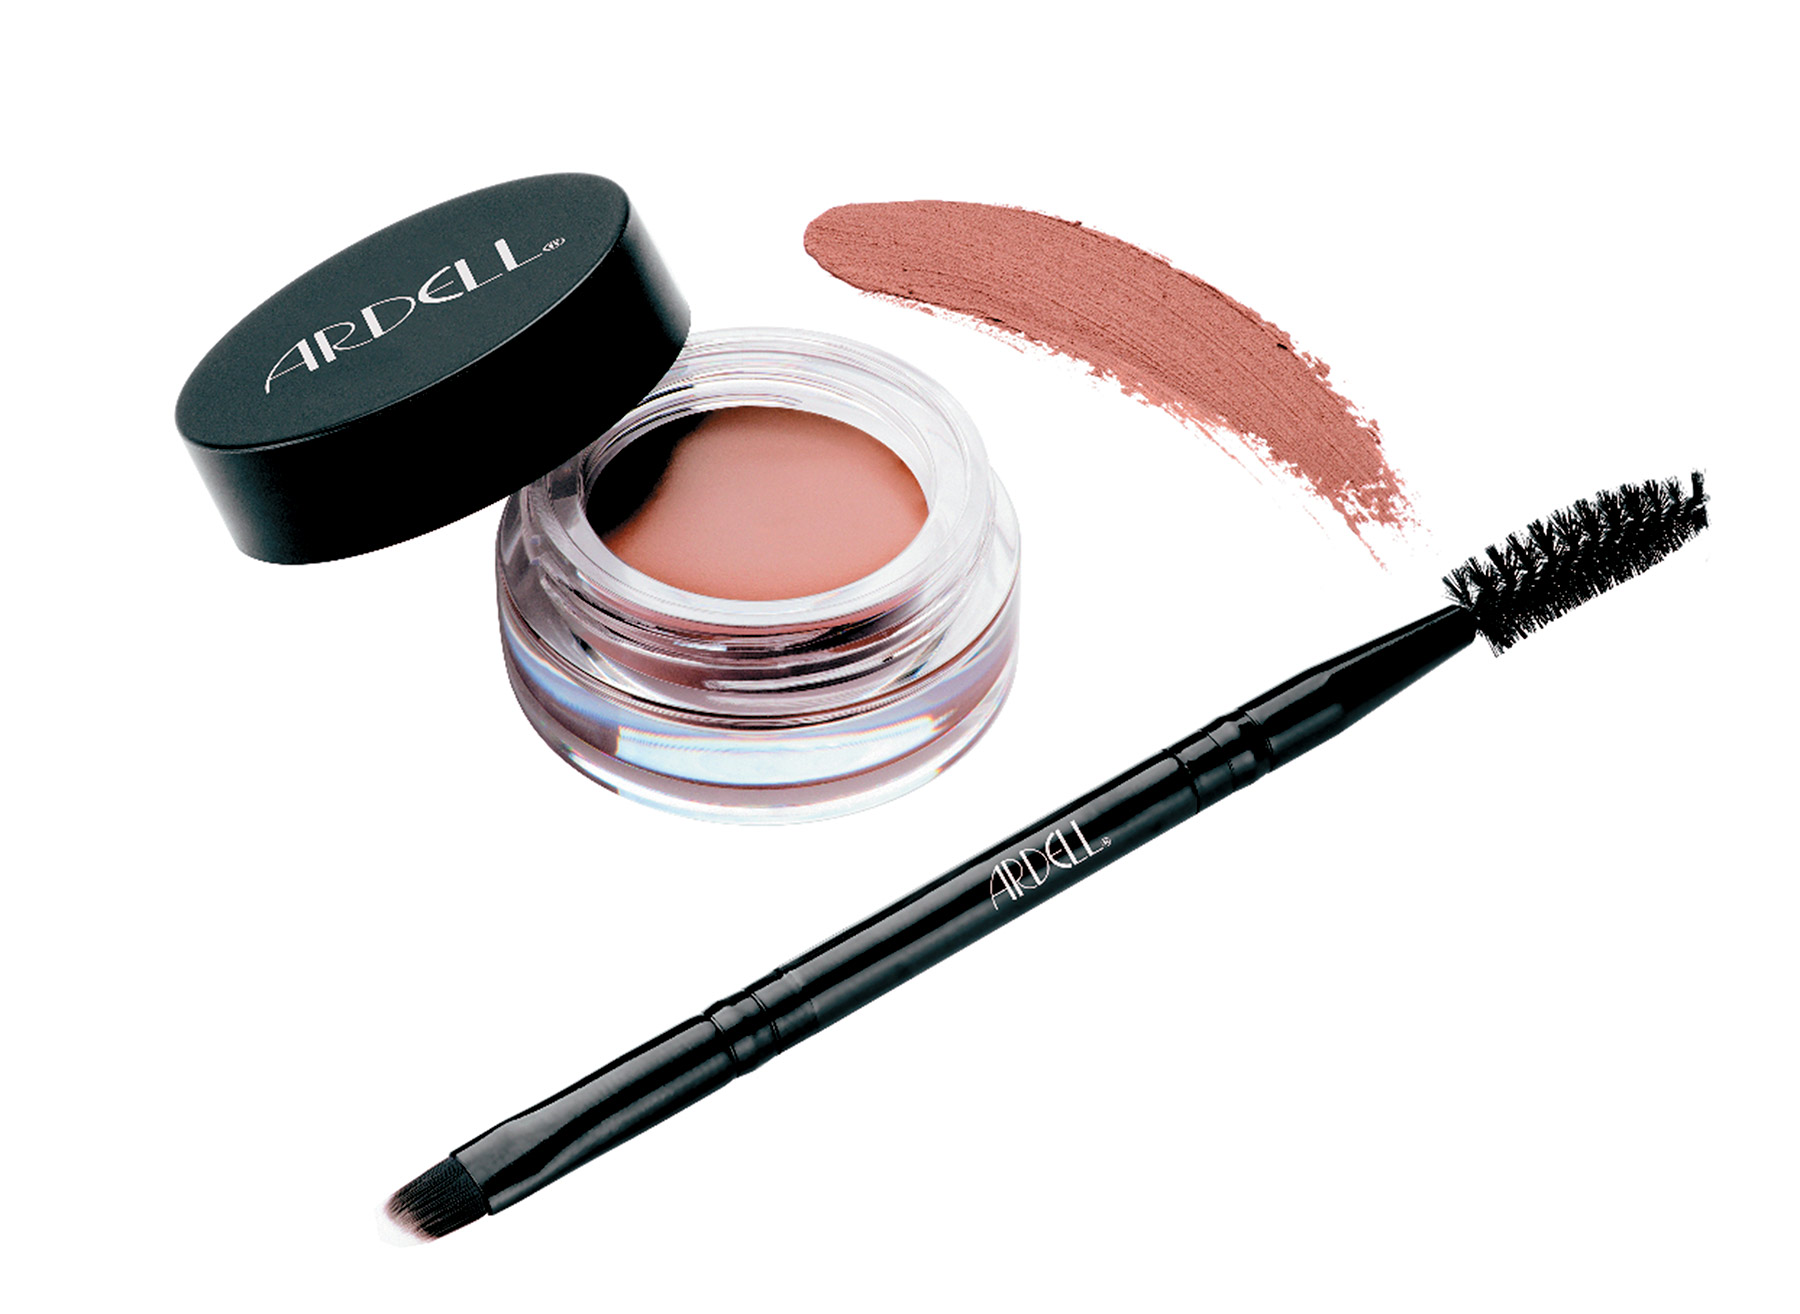 ARDELL PROFESSIONAL BROW POMADE The creamy, easy- to-blend formula sculpts and sets brows without any smudging.